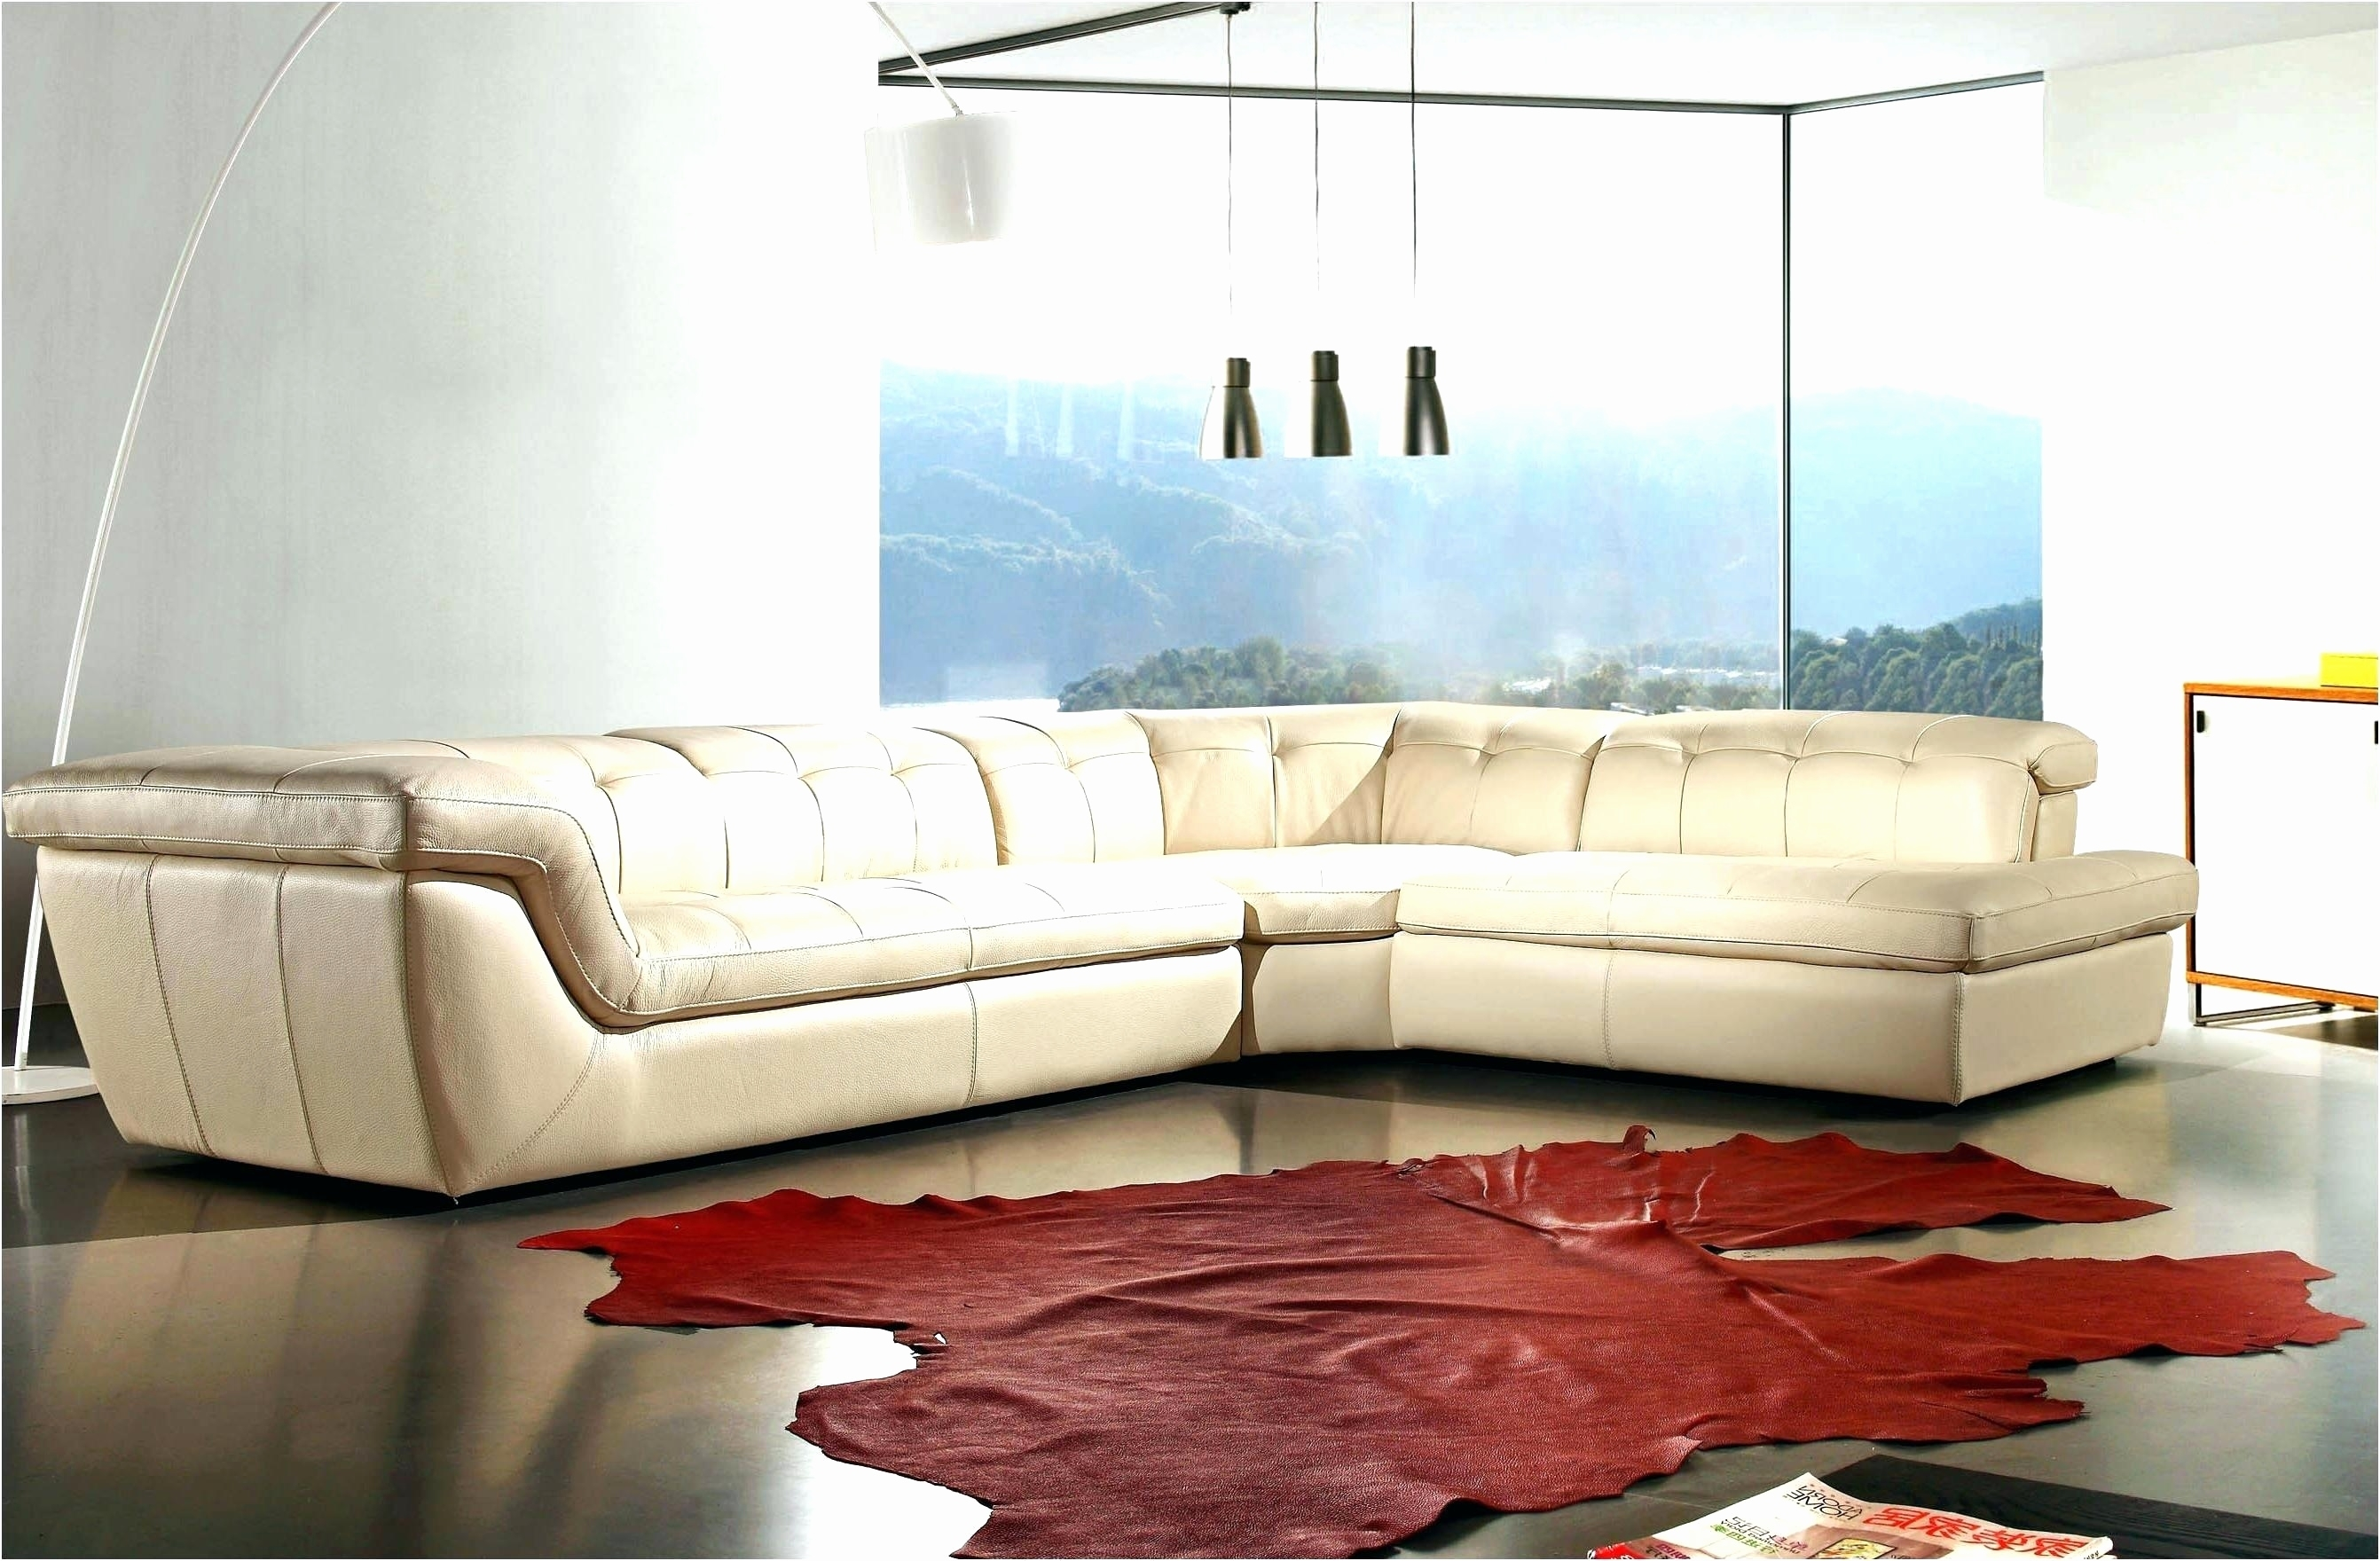 Fresh 6 Piece Microfiber Sectional Sofa 2018 – Couches And Sofas Ideas Throughout 6 Piece Leather Sectional Sofas (View 10 of 10)